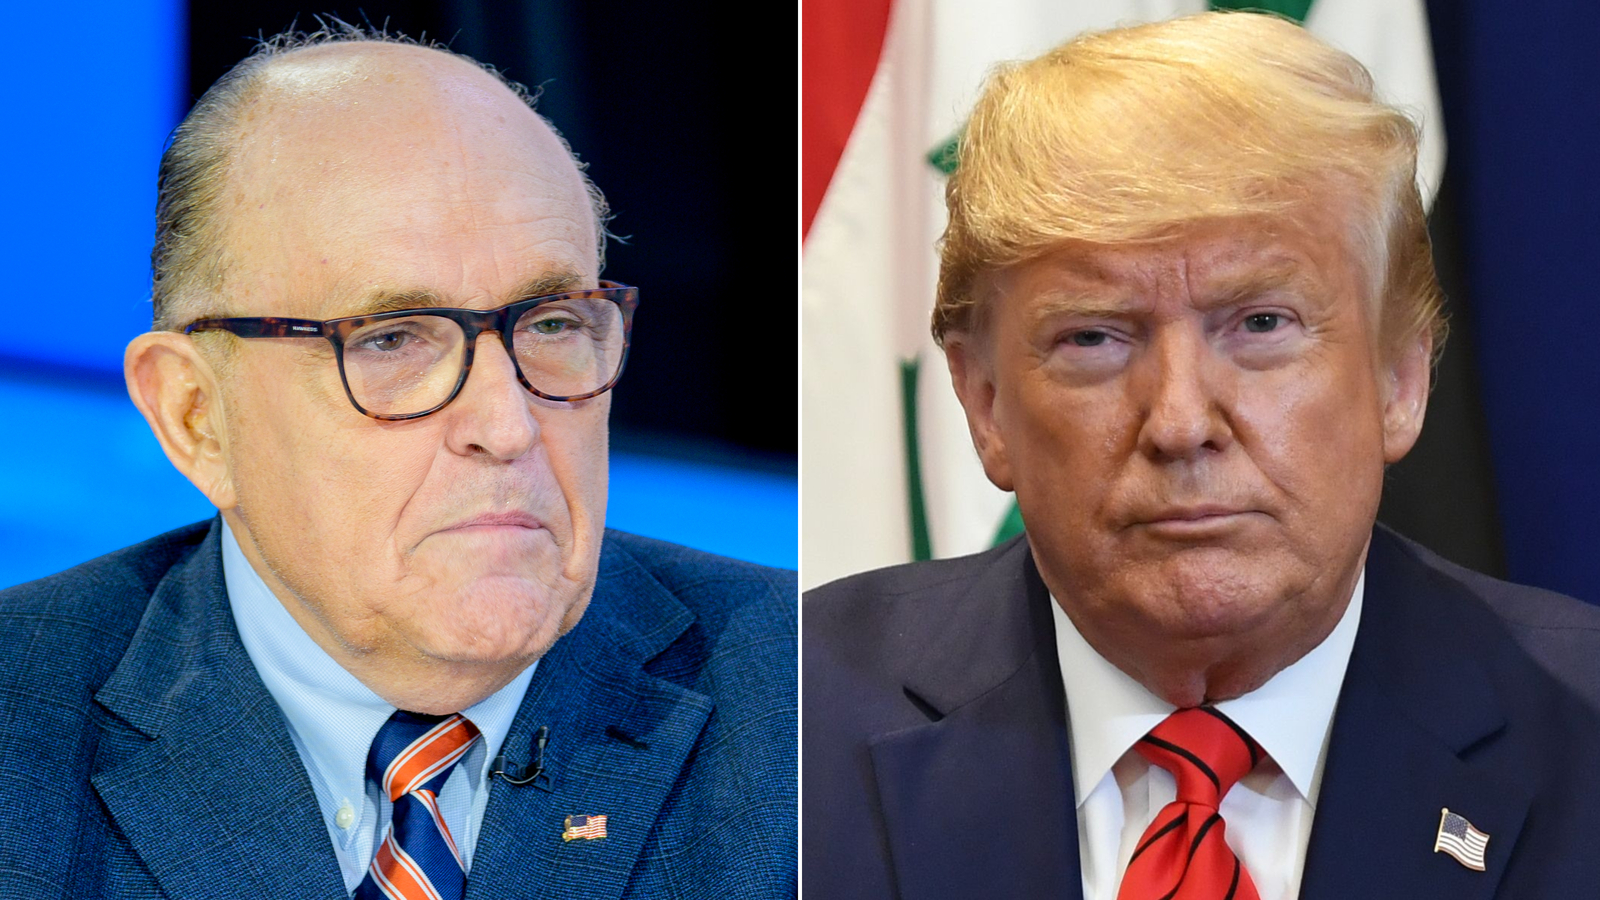 Trump associates, including Giuliani, are asking for pardons